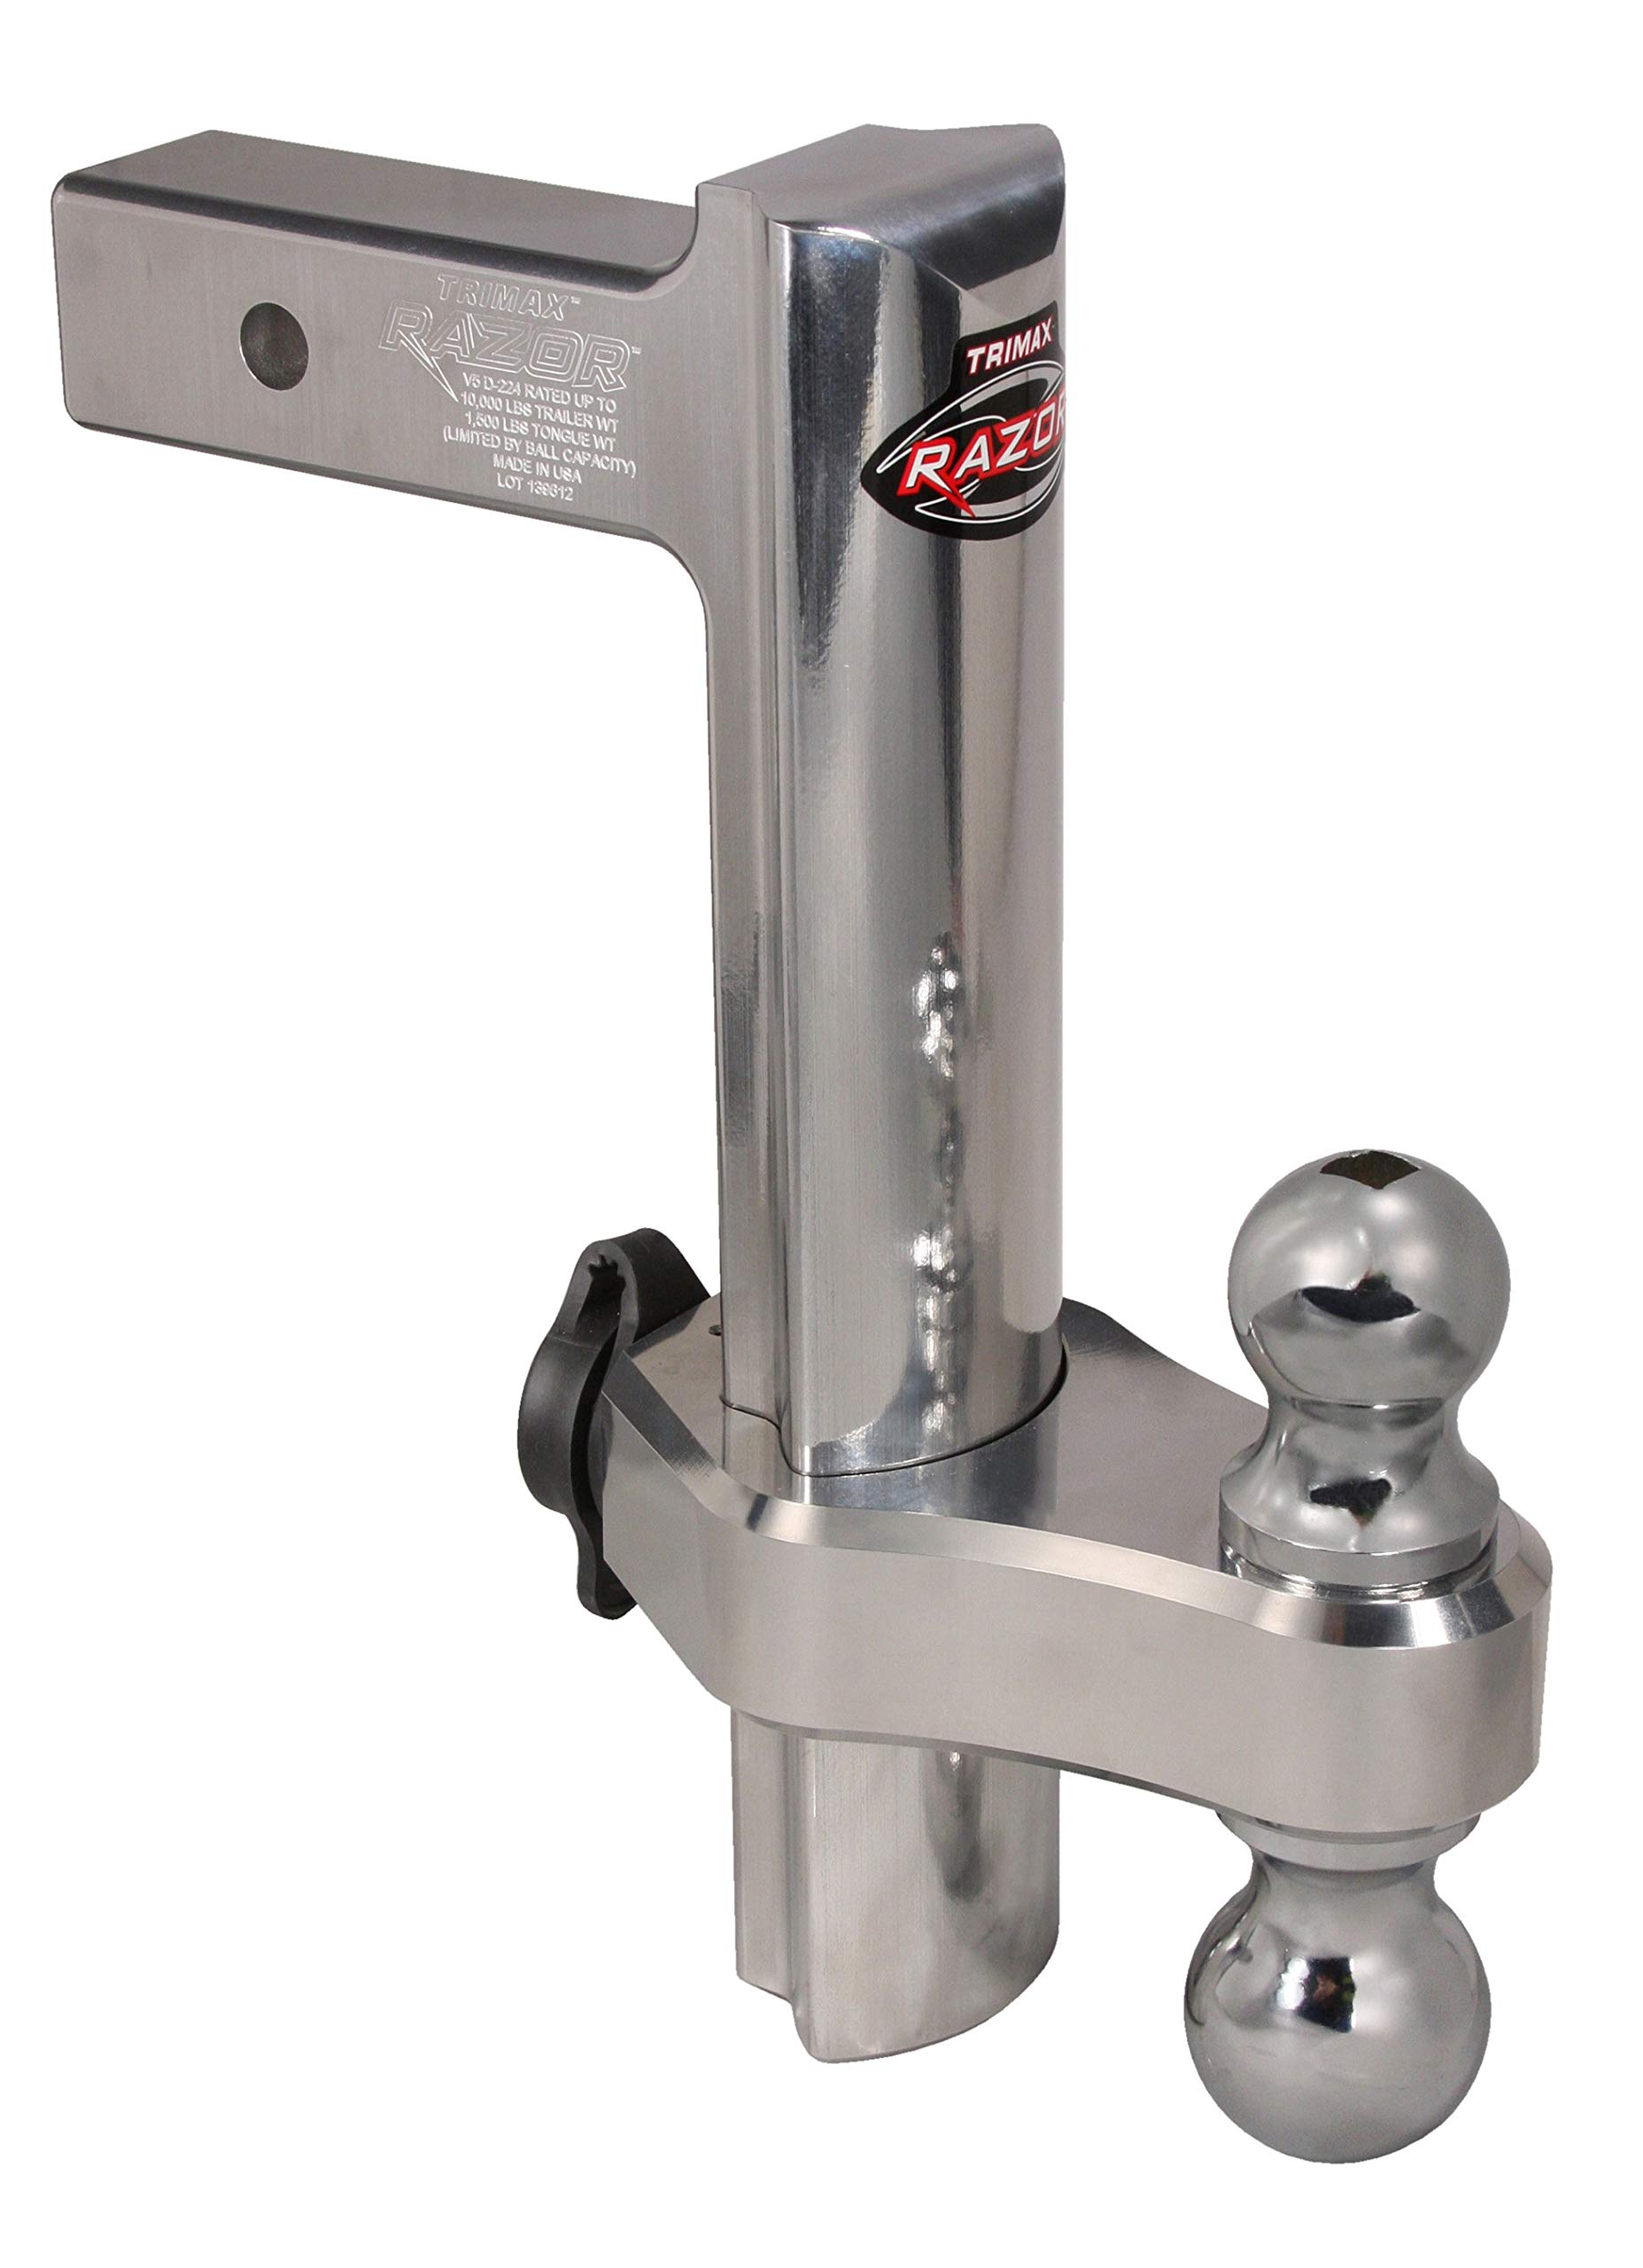 Trimax TRZ12AL 12'' Premium Aluminum Adjustable Hitch with Dual Hitch Ball and T3 Receiver Lock by Trimax